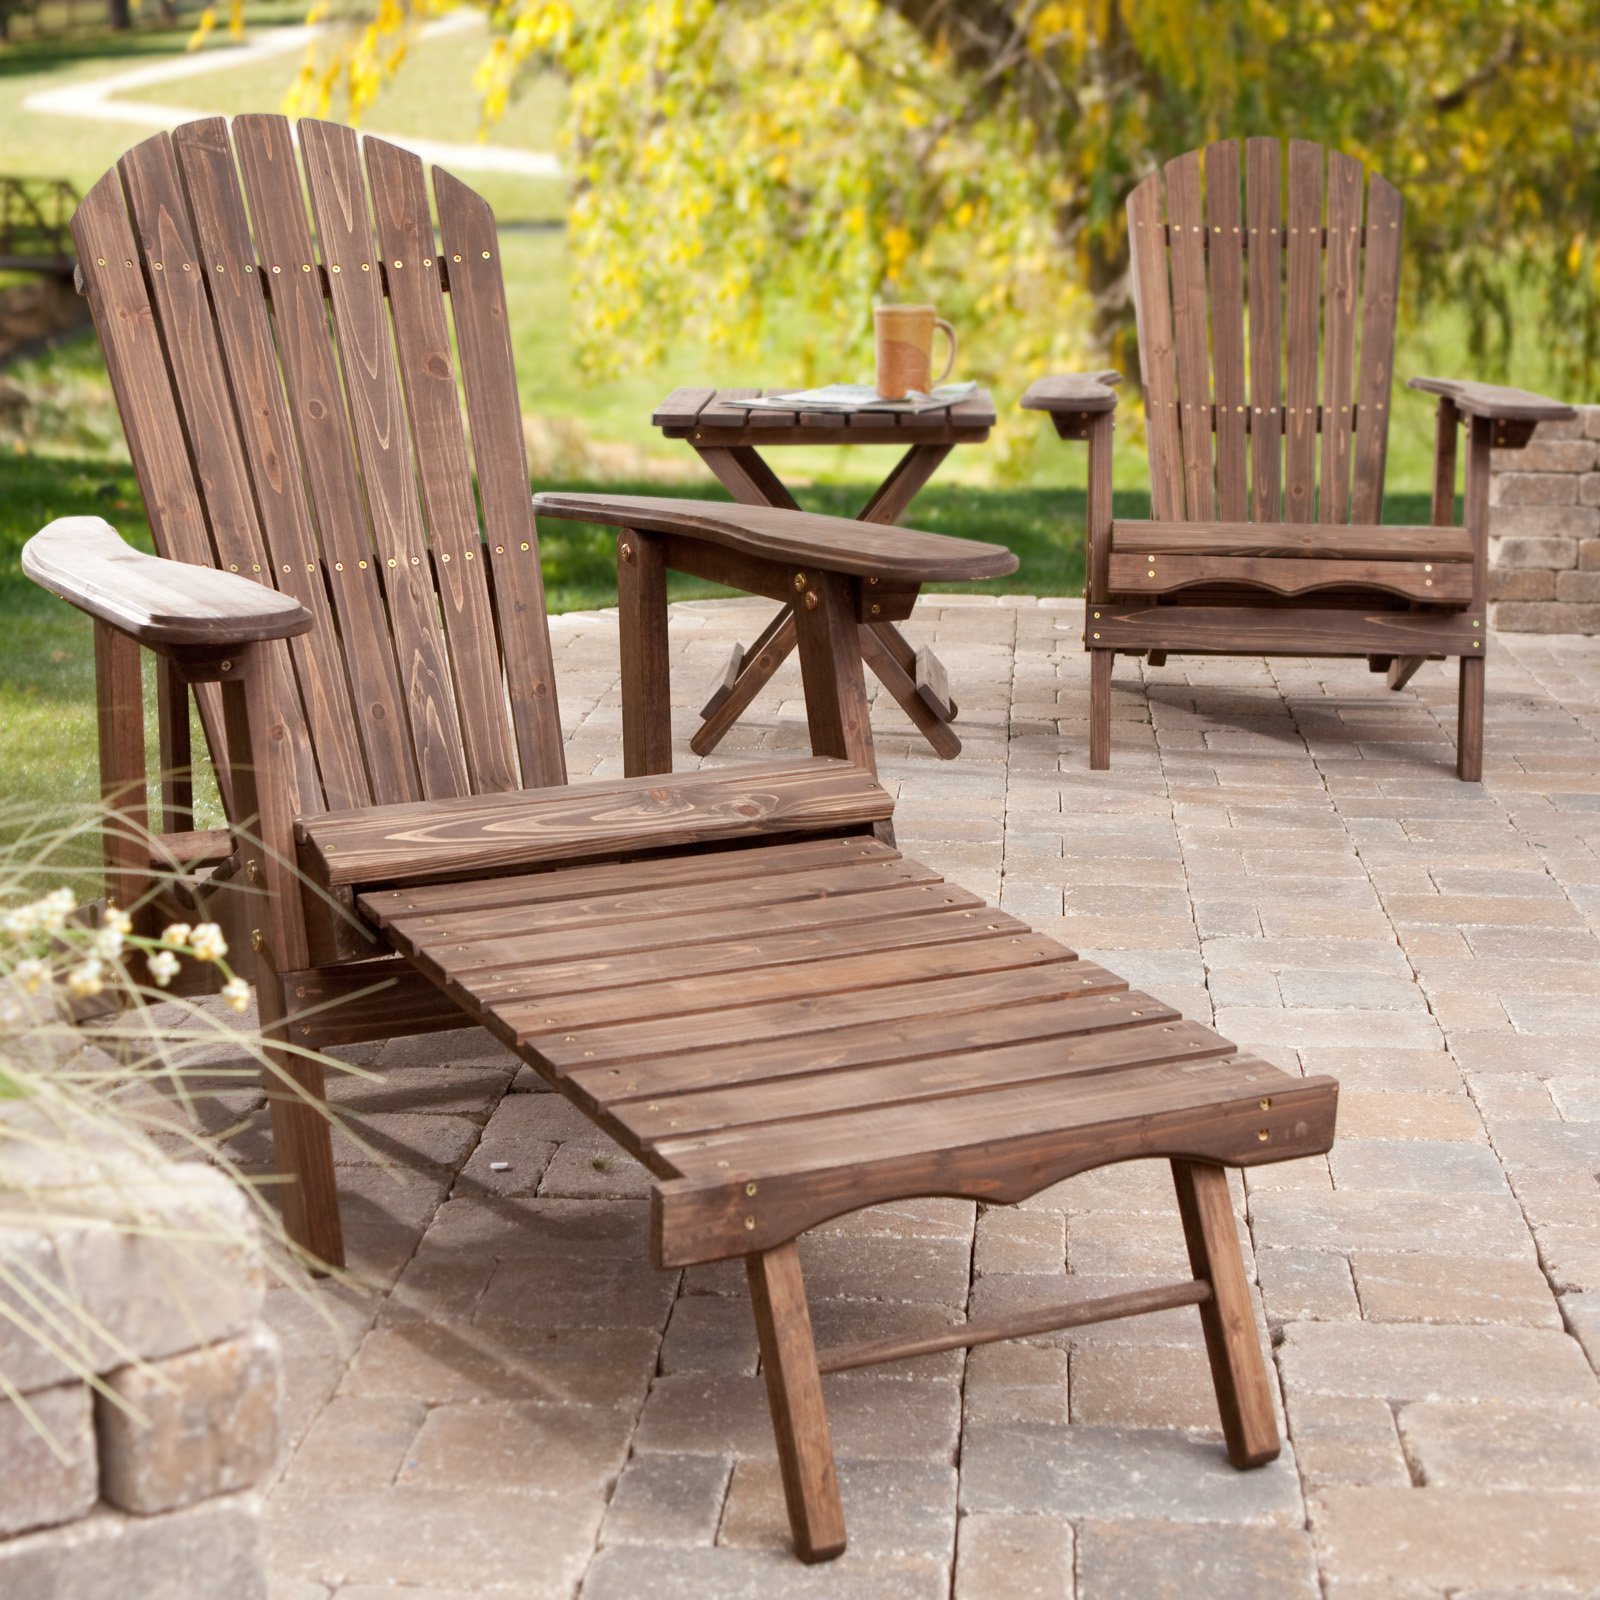 Coral Coast Big Daddy 3 pc. Reclining Adirondack Chairs with Pull-out Ottoman Set and Side Table Dark Brown by